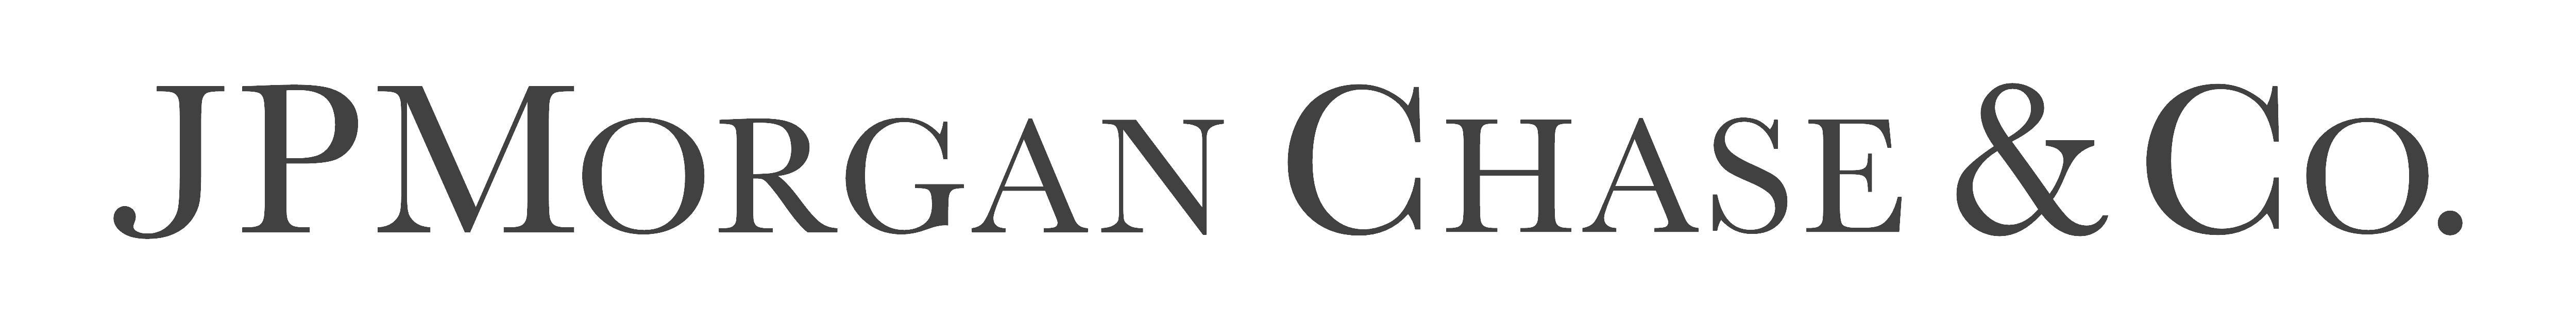 jpmorgan chase & co. essay Jp morgan chase & co is an american multinational banking  global diversity practice ltd is an award winning provider of innovative multi  diversity essay.